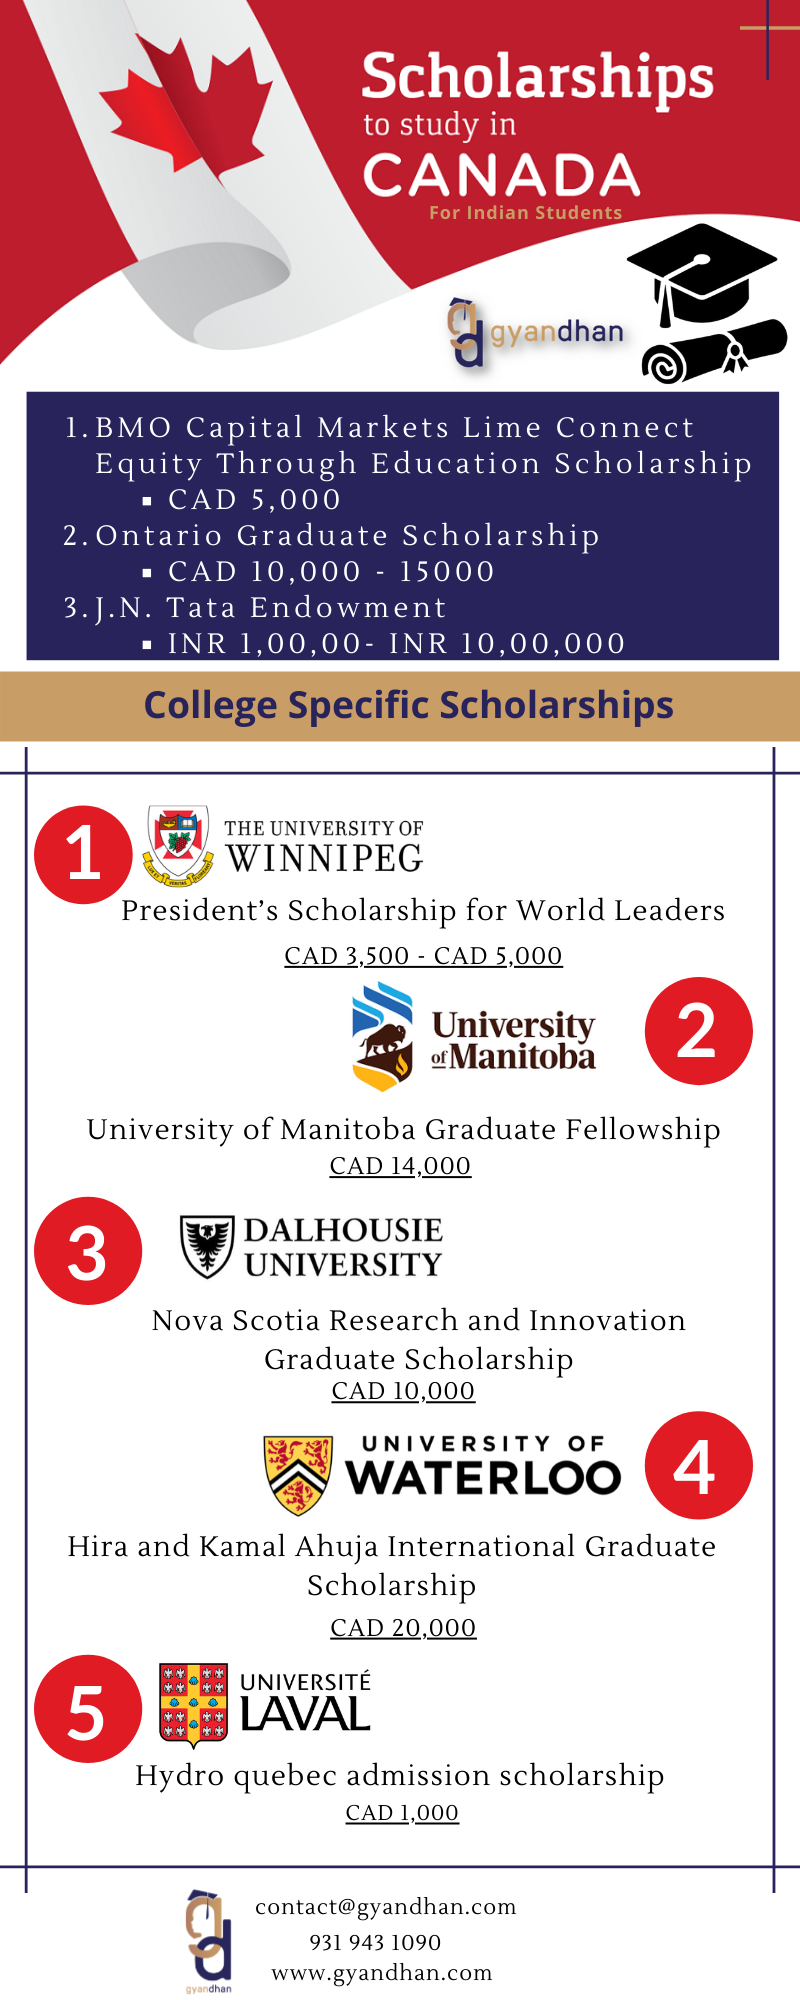 fe5337087325f3f0ba9d2324d4387502 - How To Get Scholarship In Canada For Indian Students